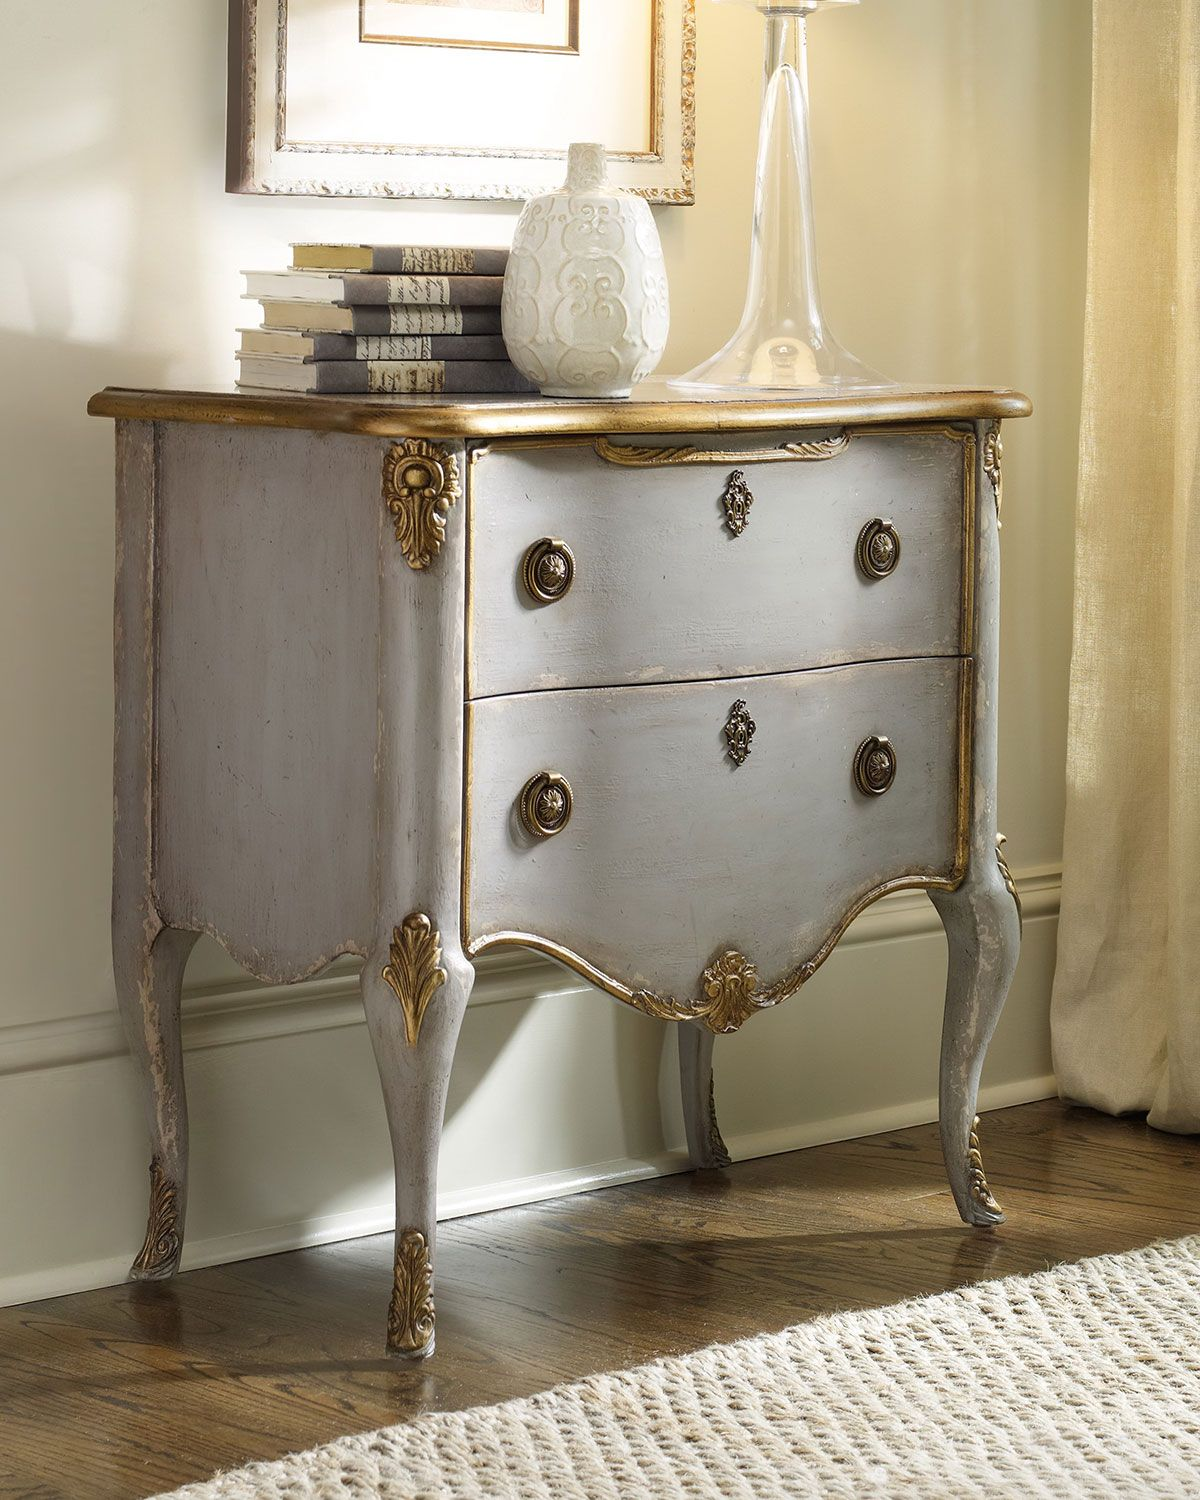 Hooker Furniture Bathroom Vanity: Hooker Furniture Francois Two-Drawer Chest